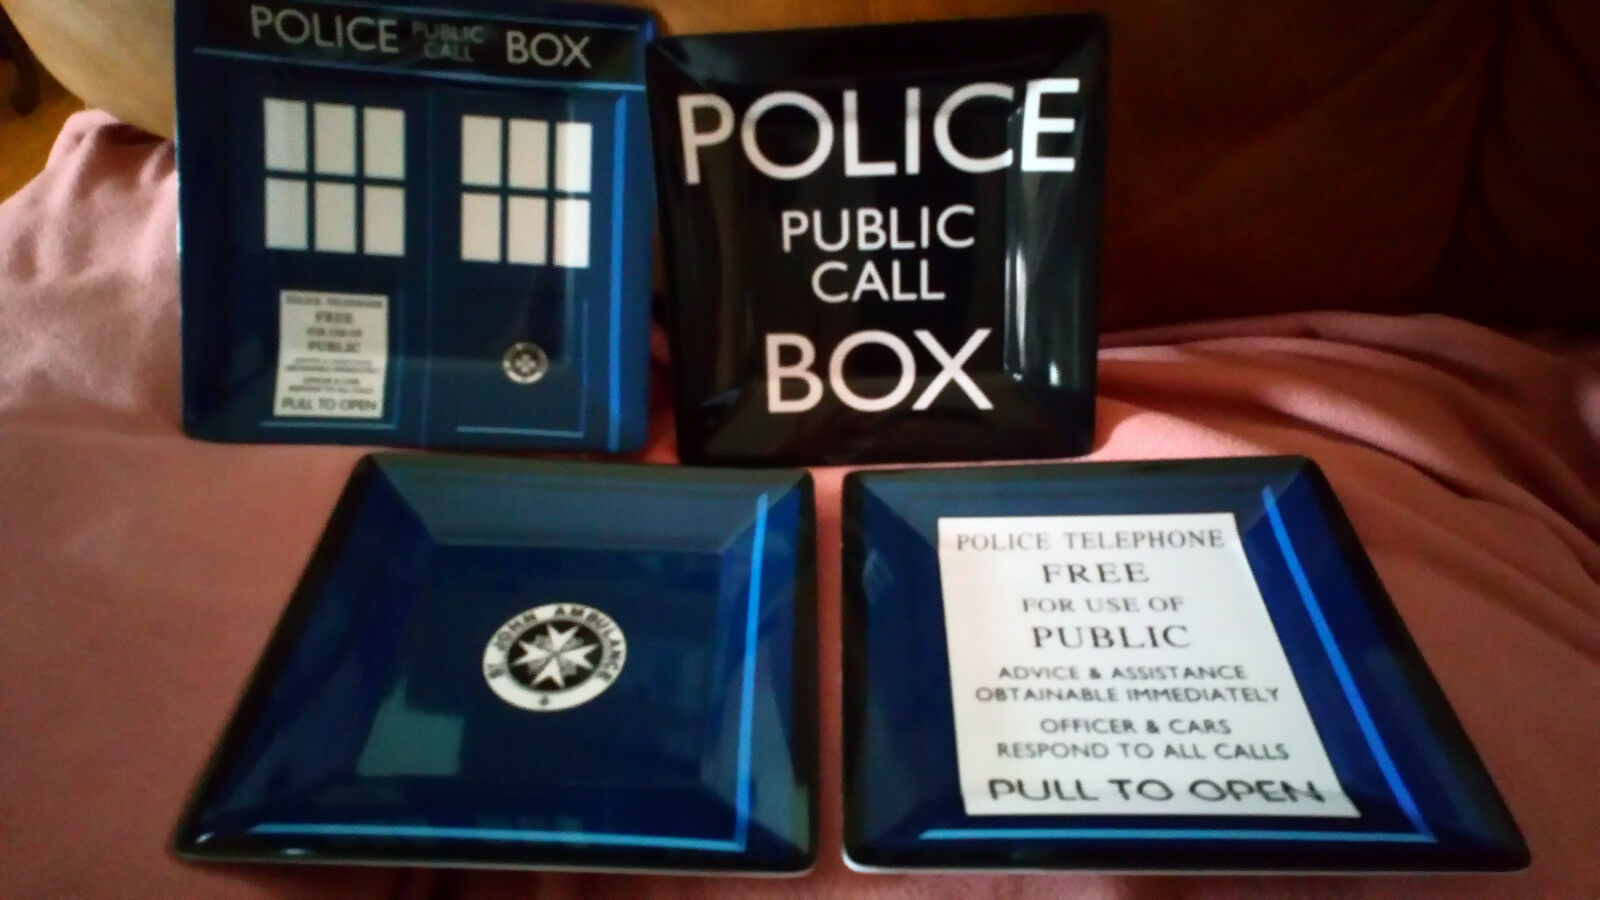 Dr. Who Dinner Plates 4 Set of Serving Plates  Melamine  PERFECT for Theme Party